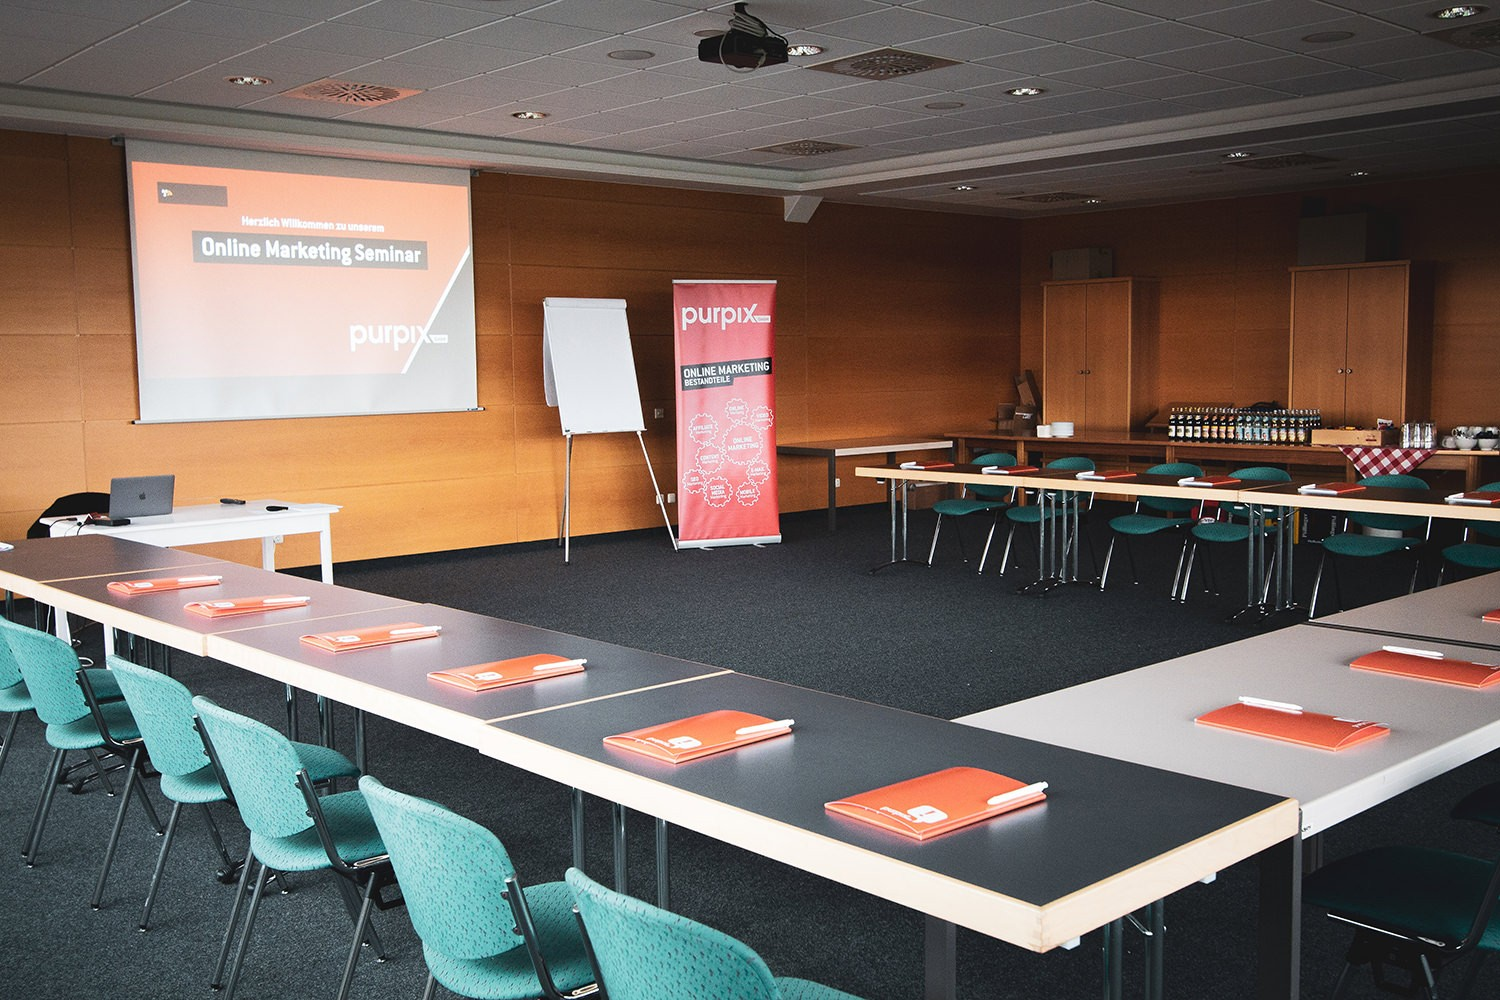 Spannendes Online Marketing Seminar bei purpix